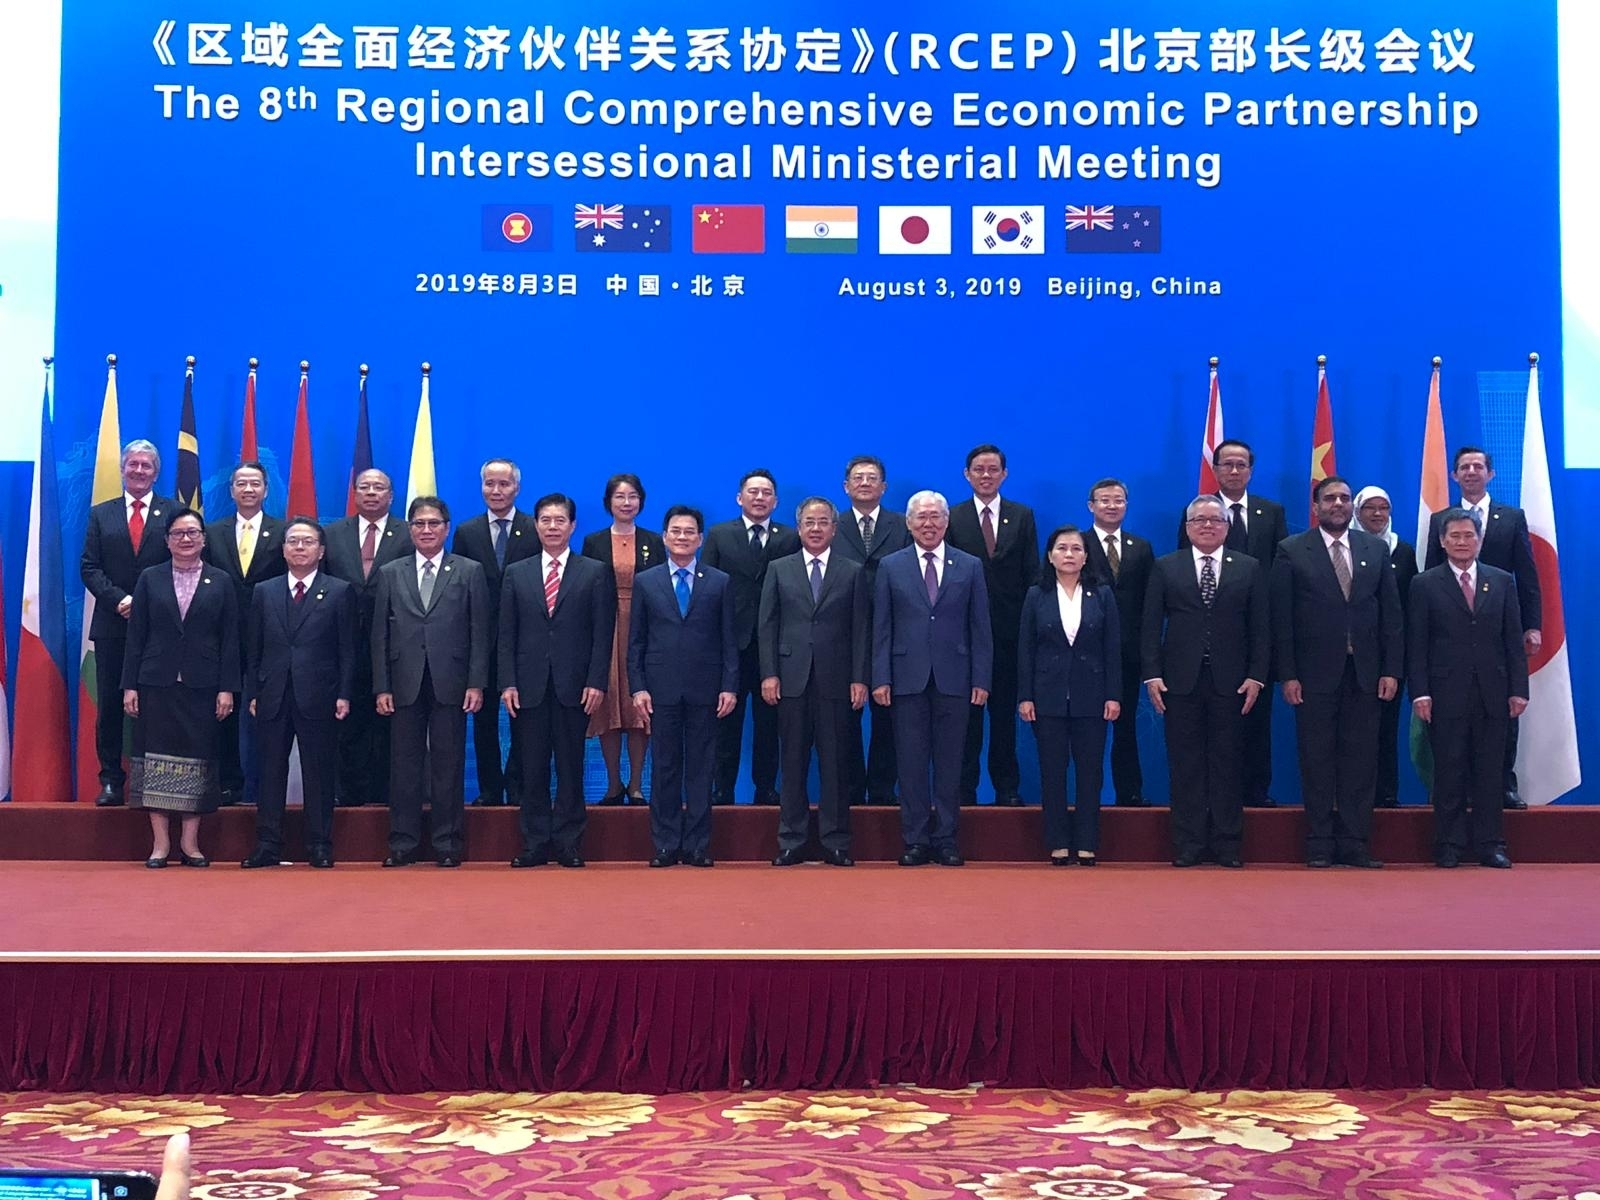 The 8th Regional Comprehensive Economic Partnership (RCEP) Intersessional Ministerial Meeting